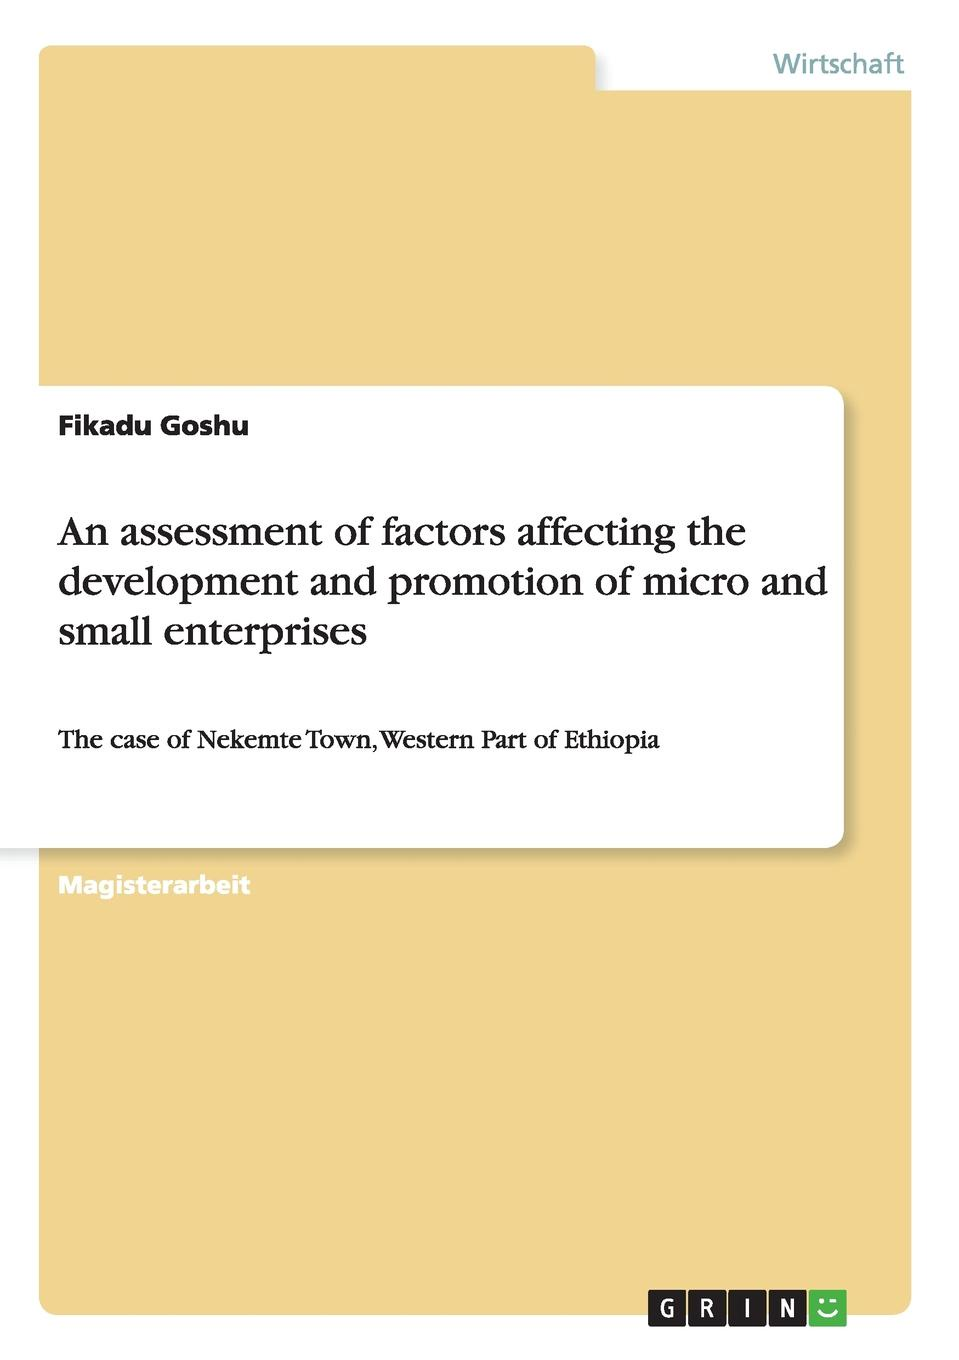 Fikadu Goshu An assessment of factors affecting the development and promotion of micro and small enterprises micro perspectives on poverty alleviation in kenya